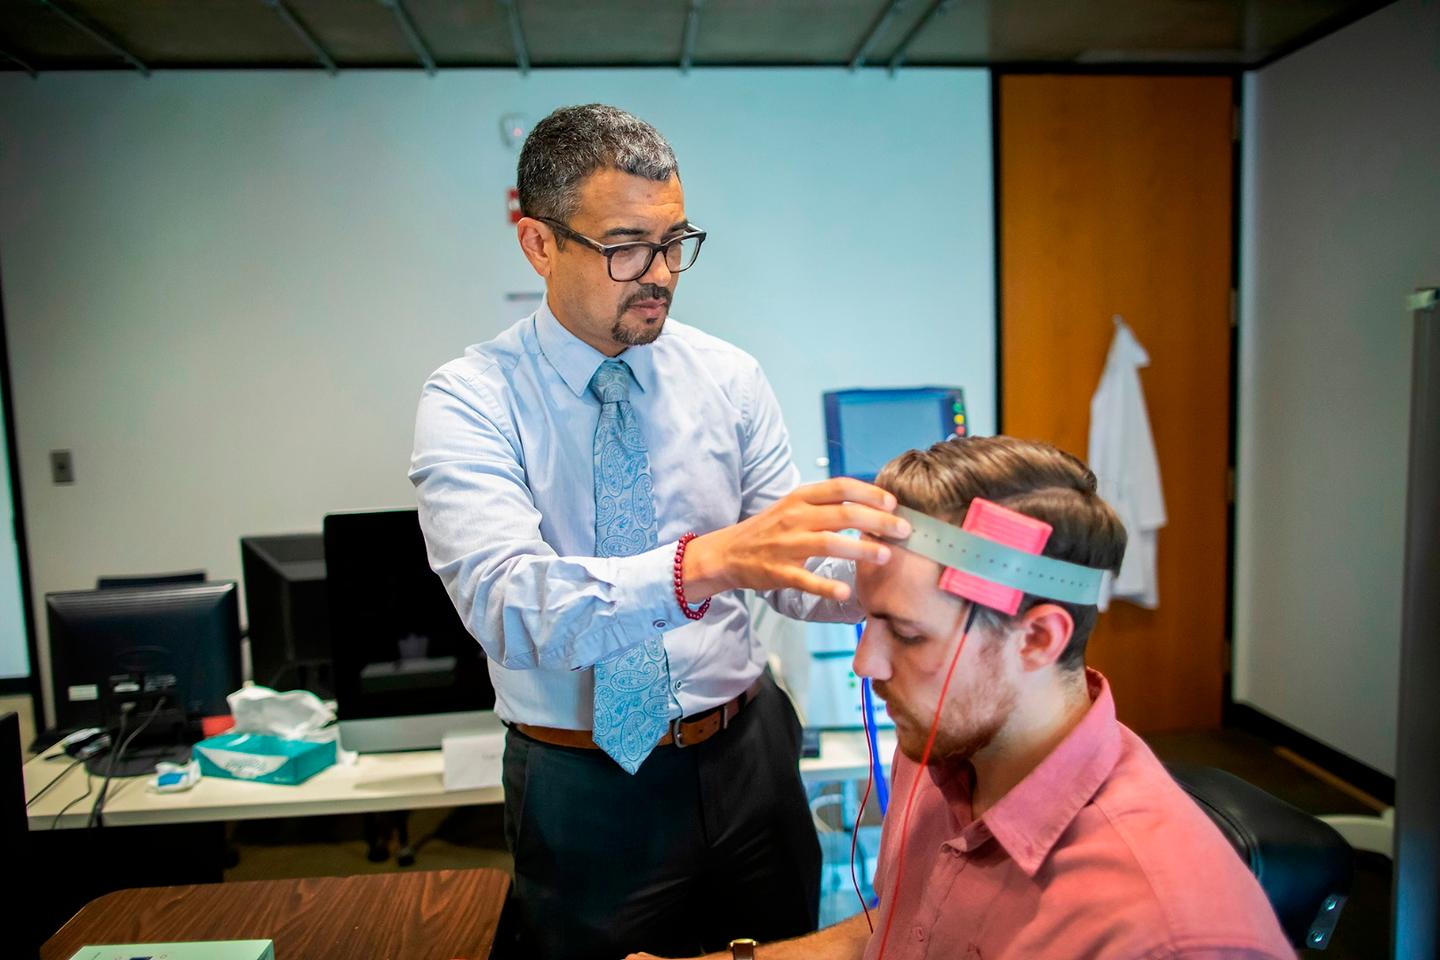 Roy Hamilton of Penn Medicine was part of a research team that studied whether a minimally invasive brain stimulation, similar to what he's demonstrating in this photo, can reduce someone's intent to commit a violent crime